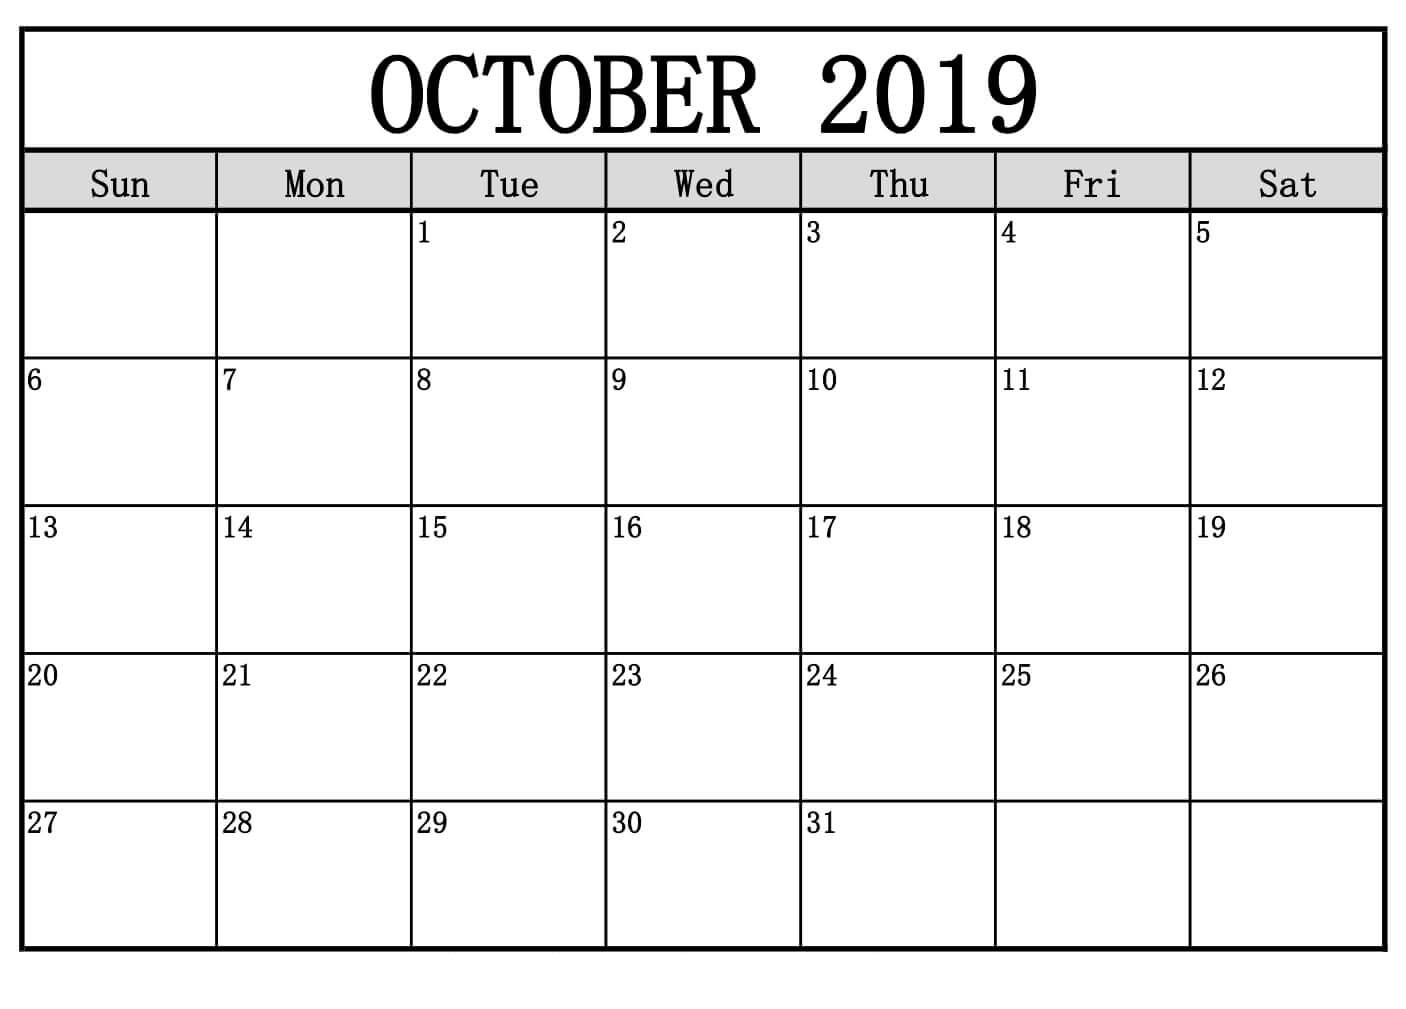 2019 Monthly Calendar (January To December) - Monthmonth pertaining to Editable October 2019 Calendar With Religious Holidays